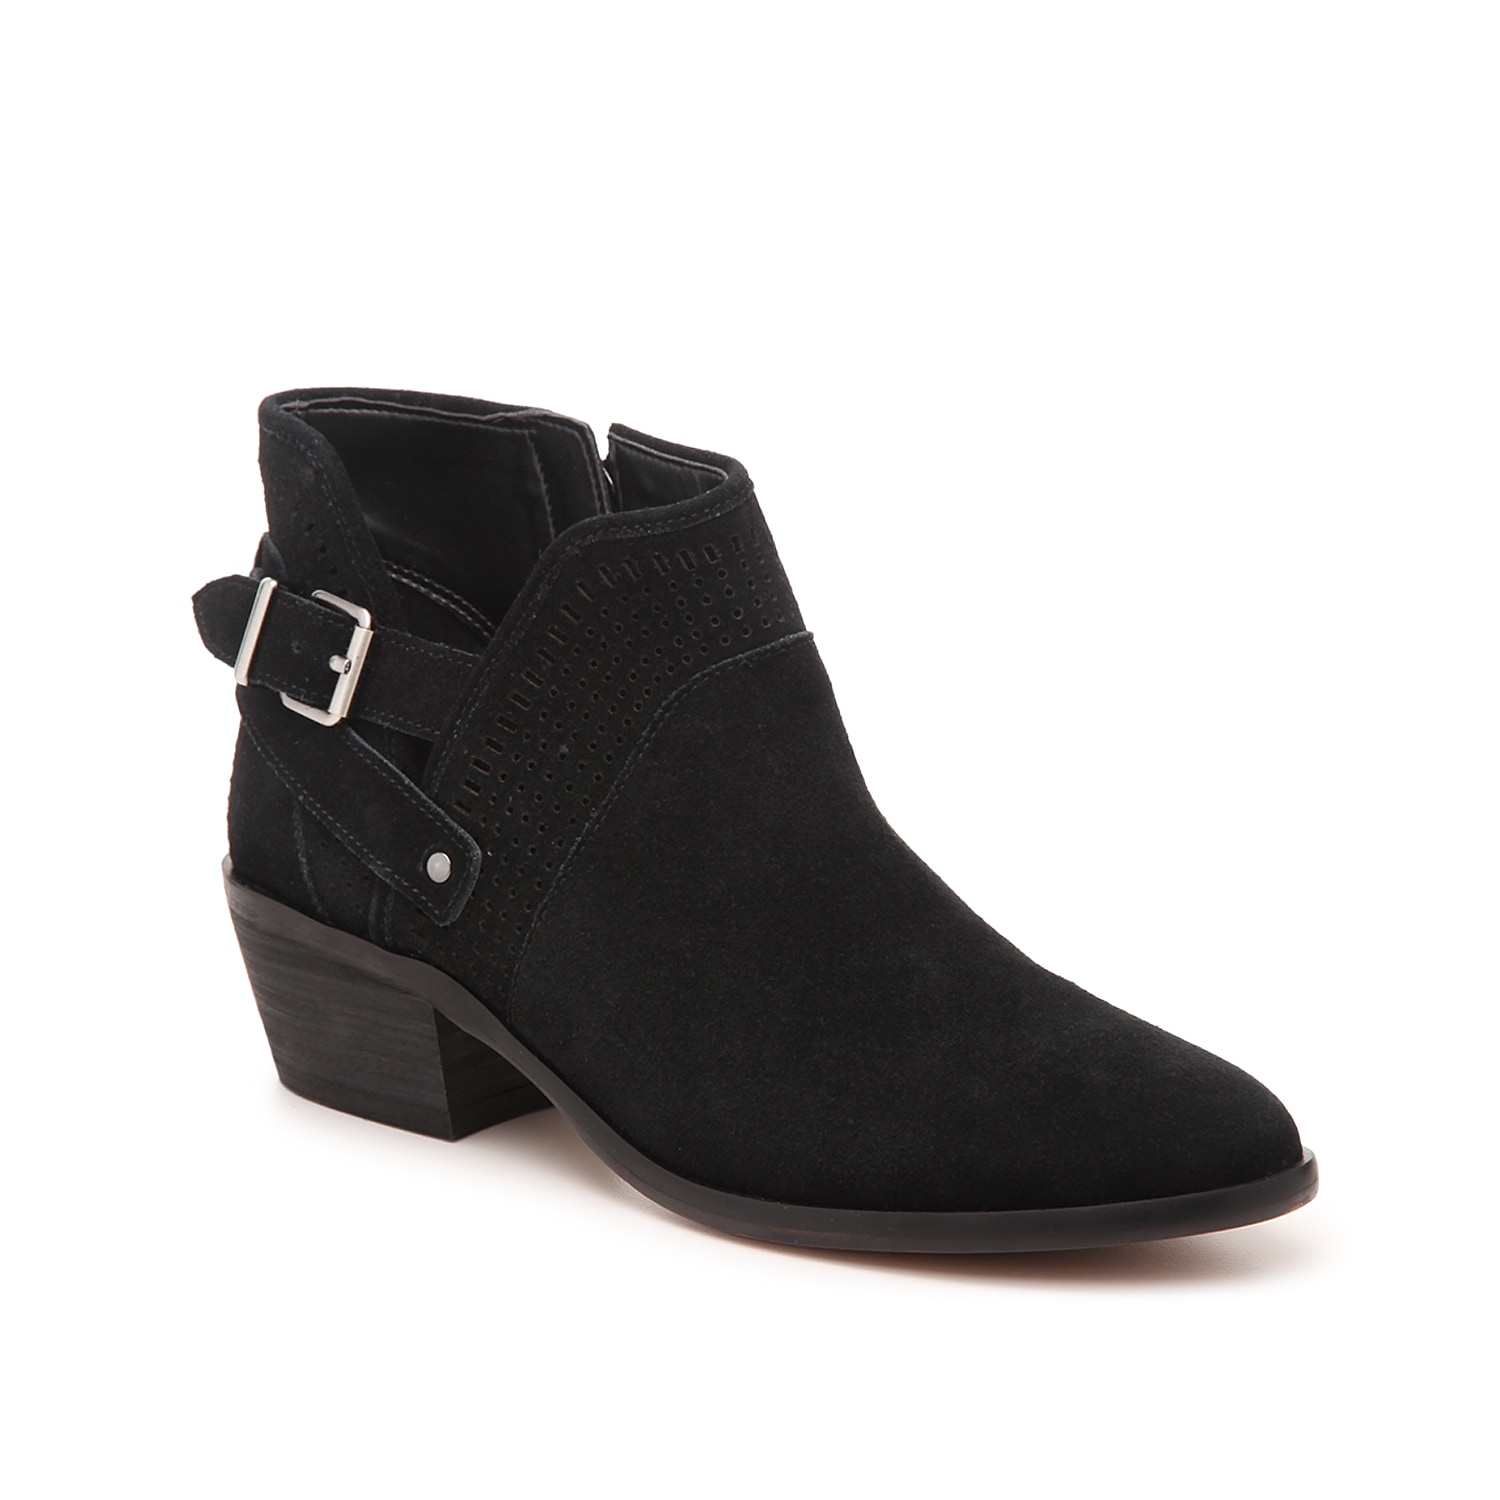 Step up your style when wearing the Pralata bootie from Vince Camuto. This ankle boot is fashioned with a laser cut, suede upper and an exposed buckle accent for a fashion-forward look!